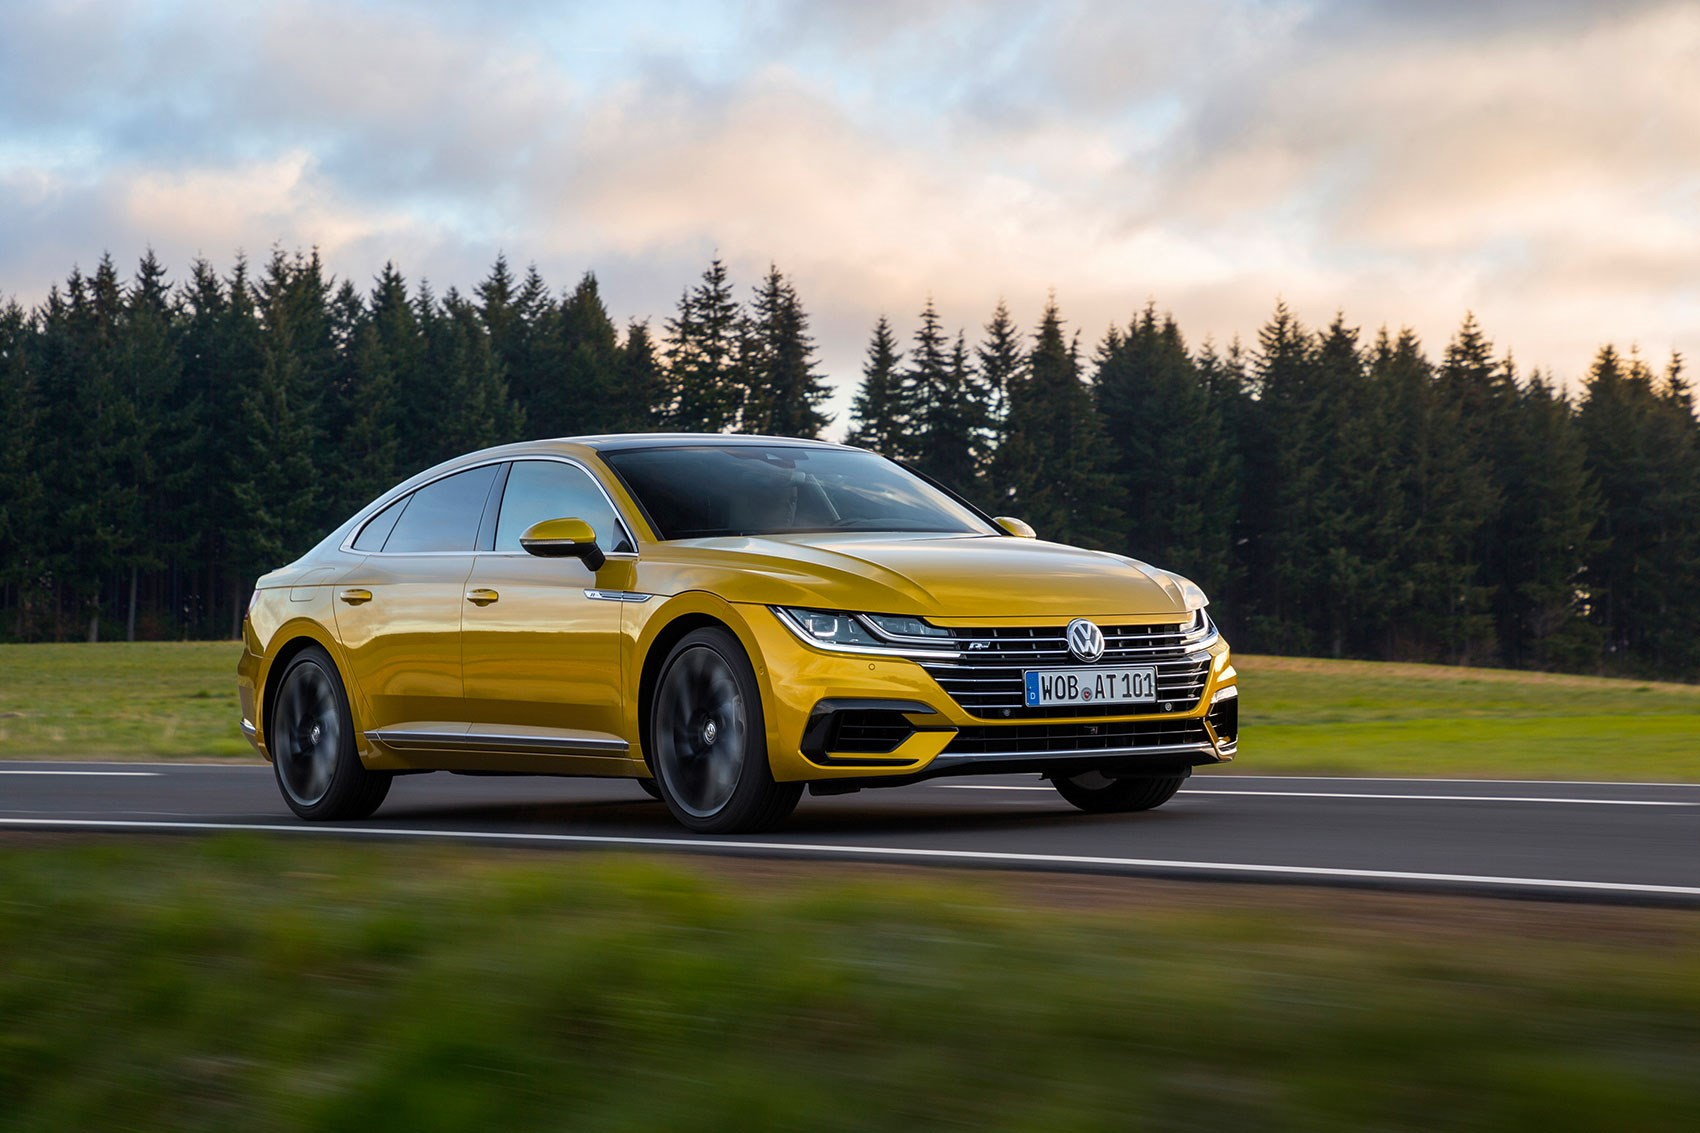 Volkswagen Arteon: prices, specs and more in CAR's review